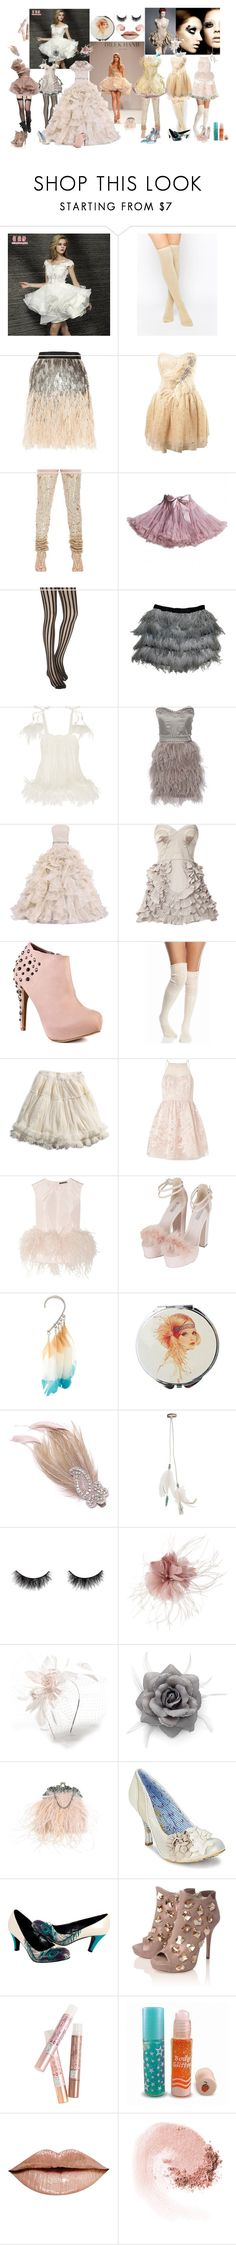 """I'm Not too Old to go to Prom, Right?"" by verysmallgoddess ❤ liked on Polyvore featuring MSSBridal, Leg Avenue, Matthew Williamson, Miss Selfridge, Manish Arora, Alexander McQueen, Agent Provocateur, Promise Shoes, Free People and American Eagle Outfitters"